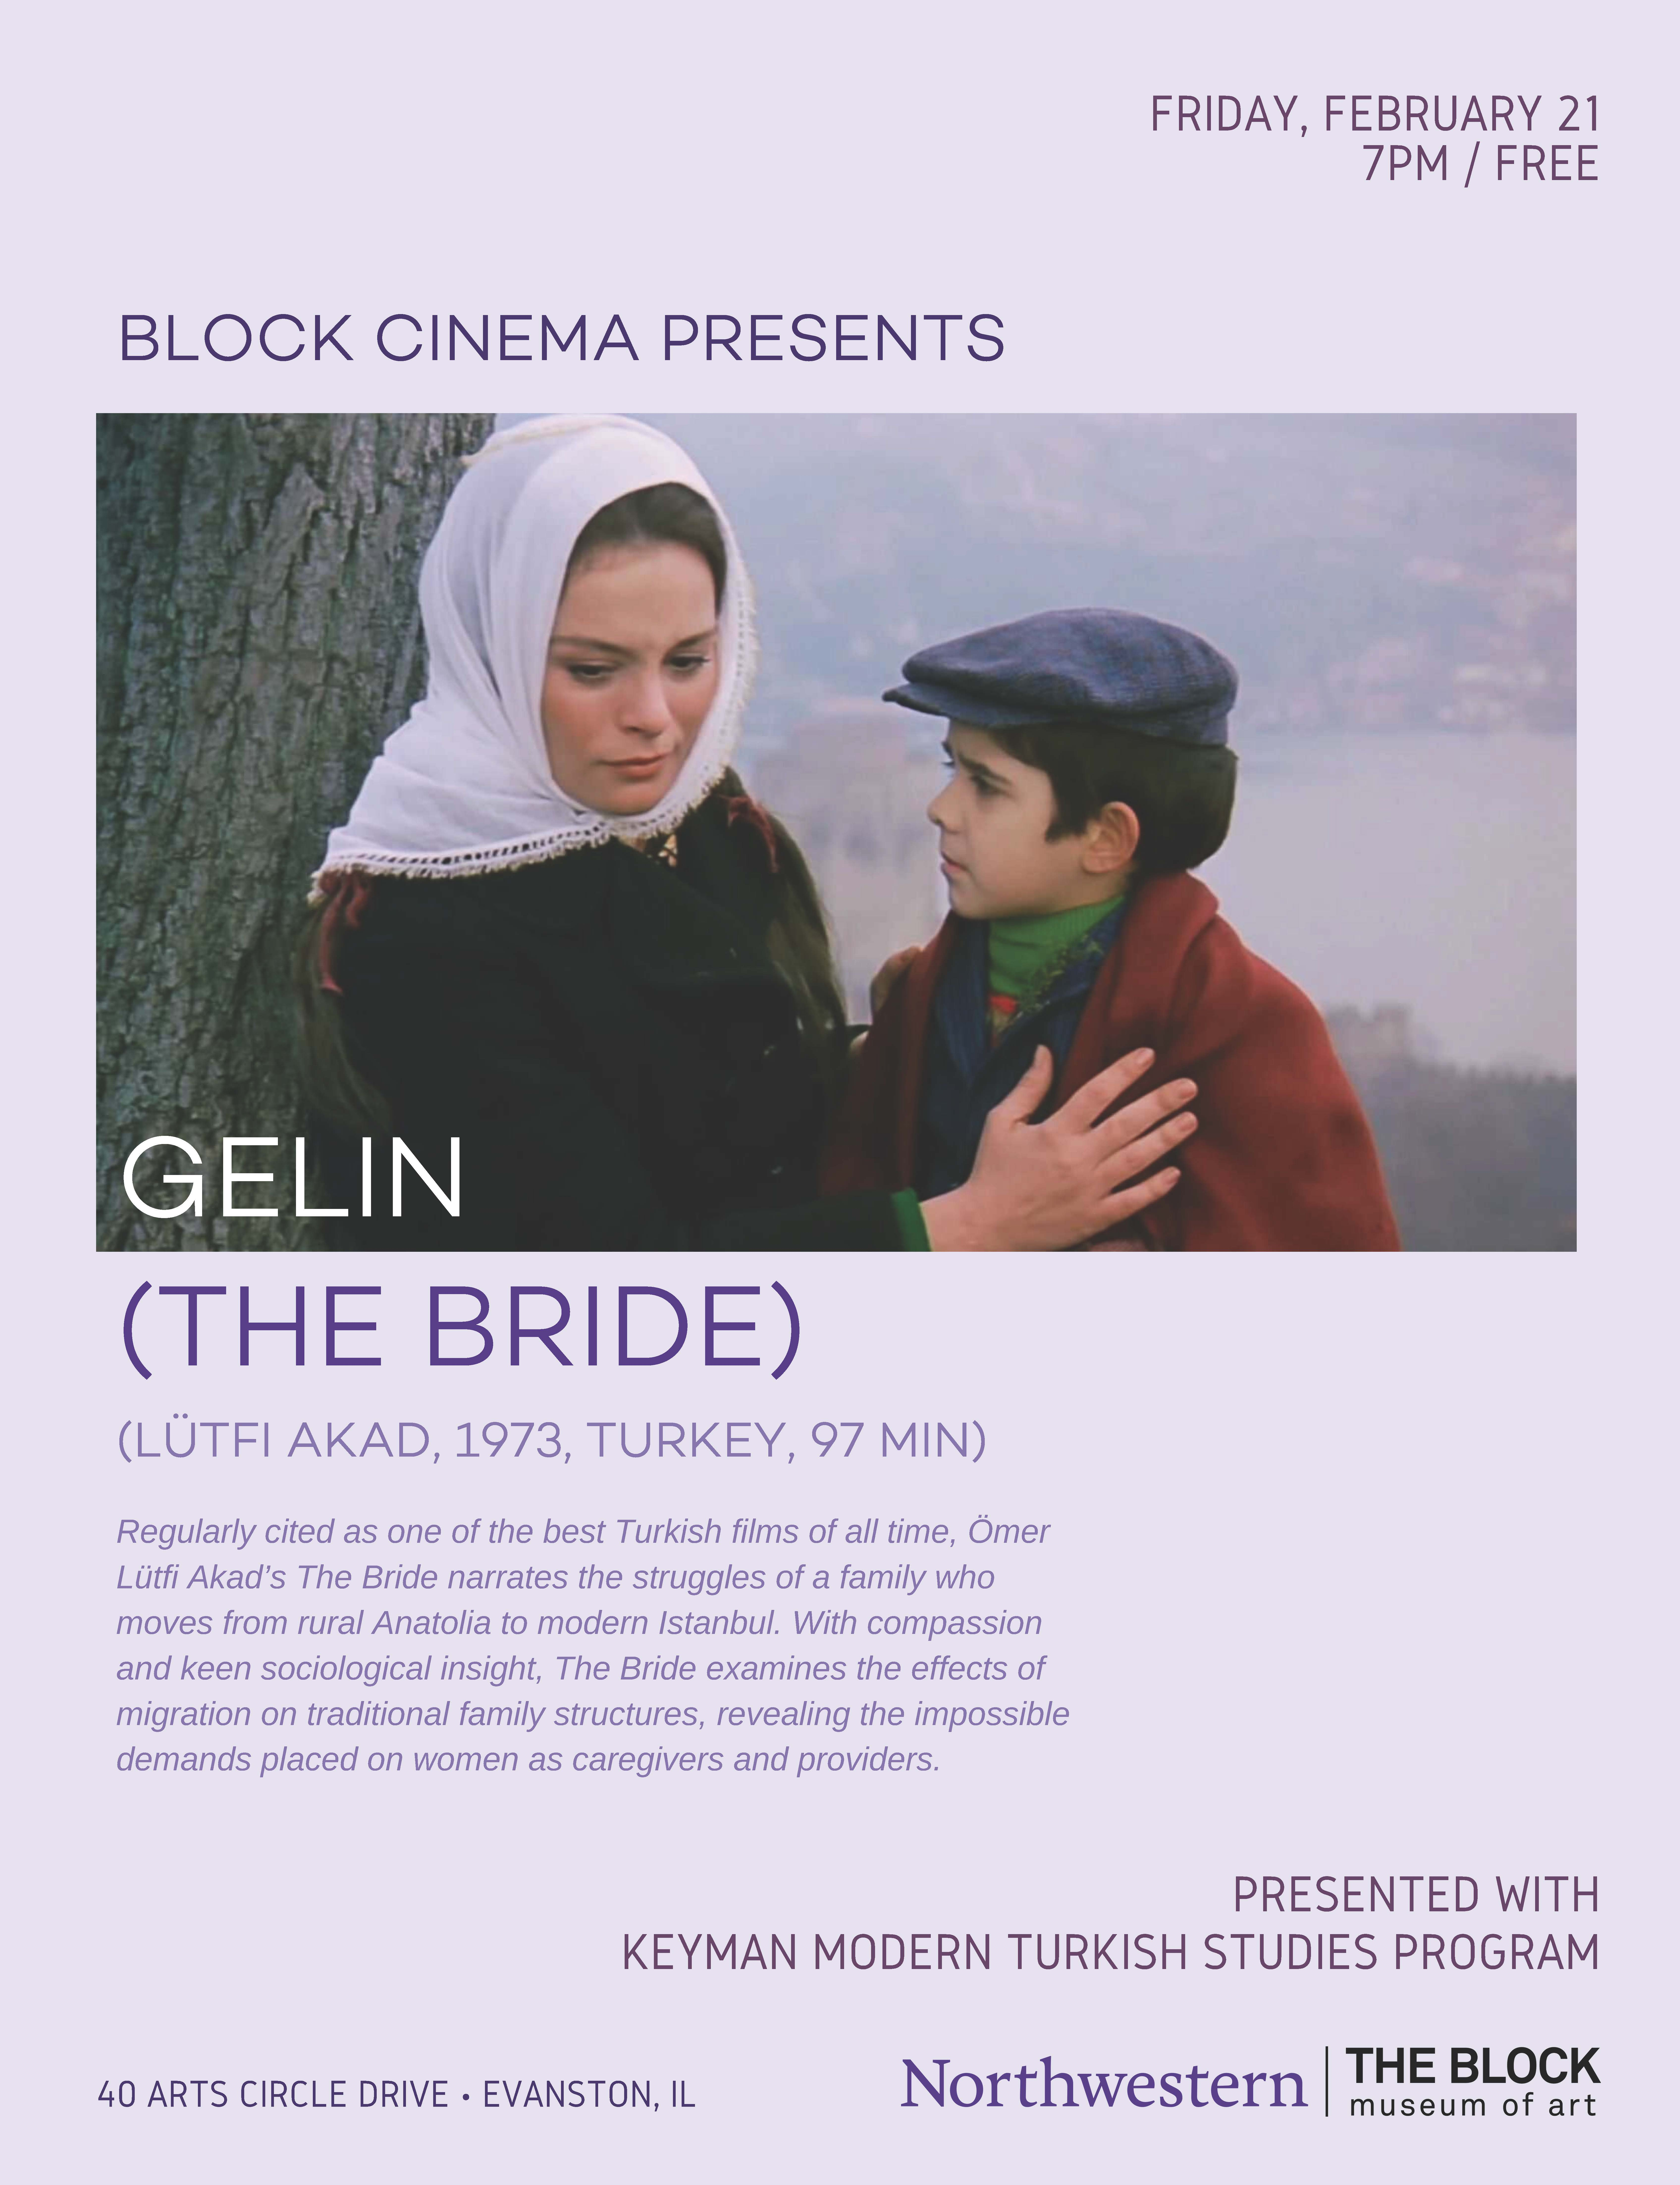 gelin film flyer